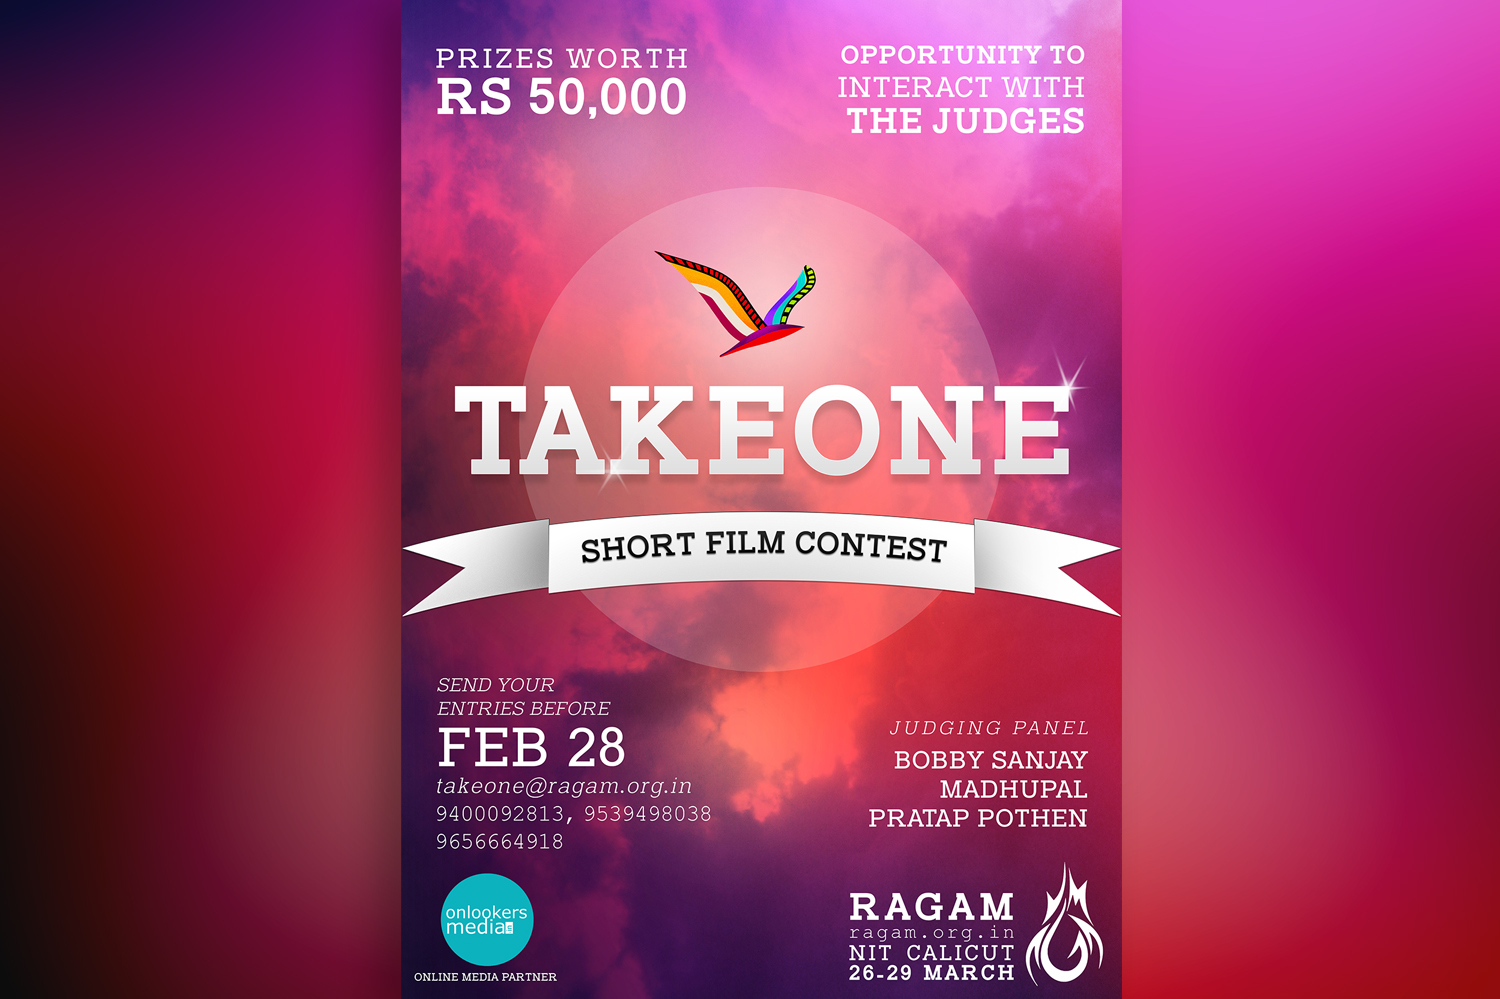 TakeOne short film contest-NIT calicut-Onlookers Media